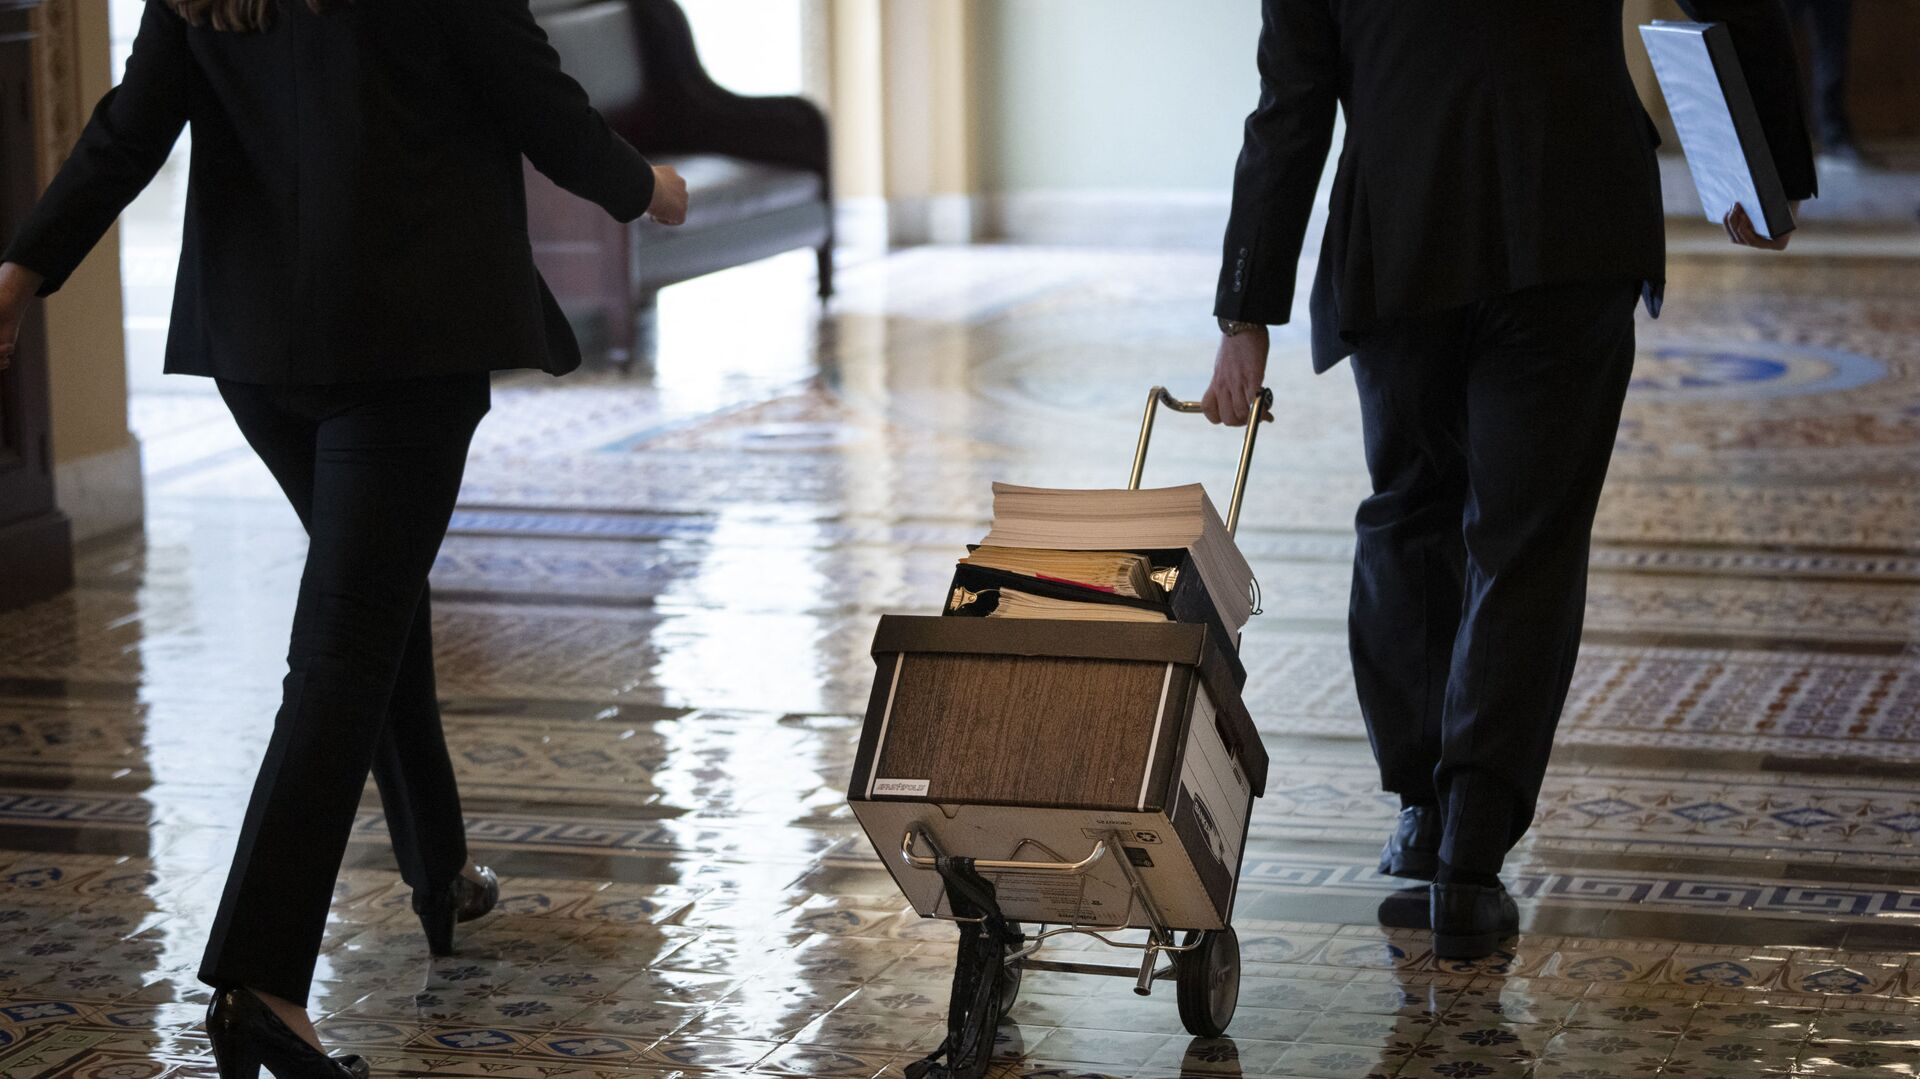 Documents, including text of the bipartisan infrastructure legislation, is wheeled toward the office of Senate Majority Leader Chuck Schumer (D-NY) at the U.S. Capitol on August 2, 2021 in Washington, DC. - Sputnik International, 1920, 02.08.2021